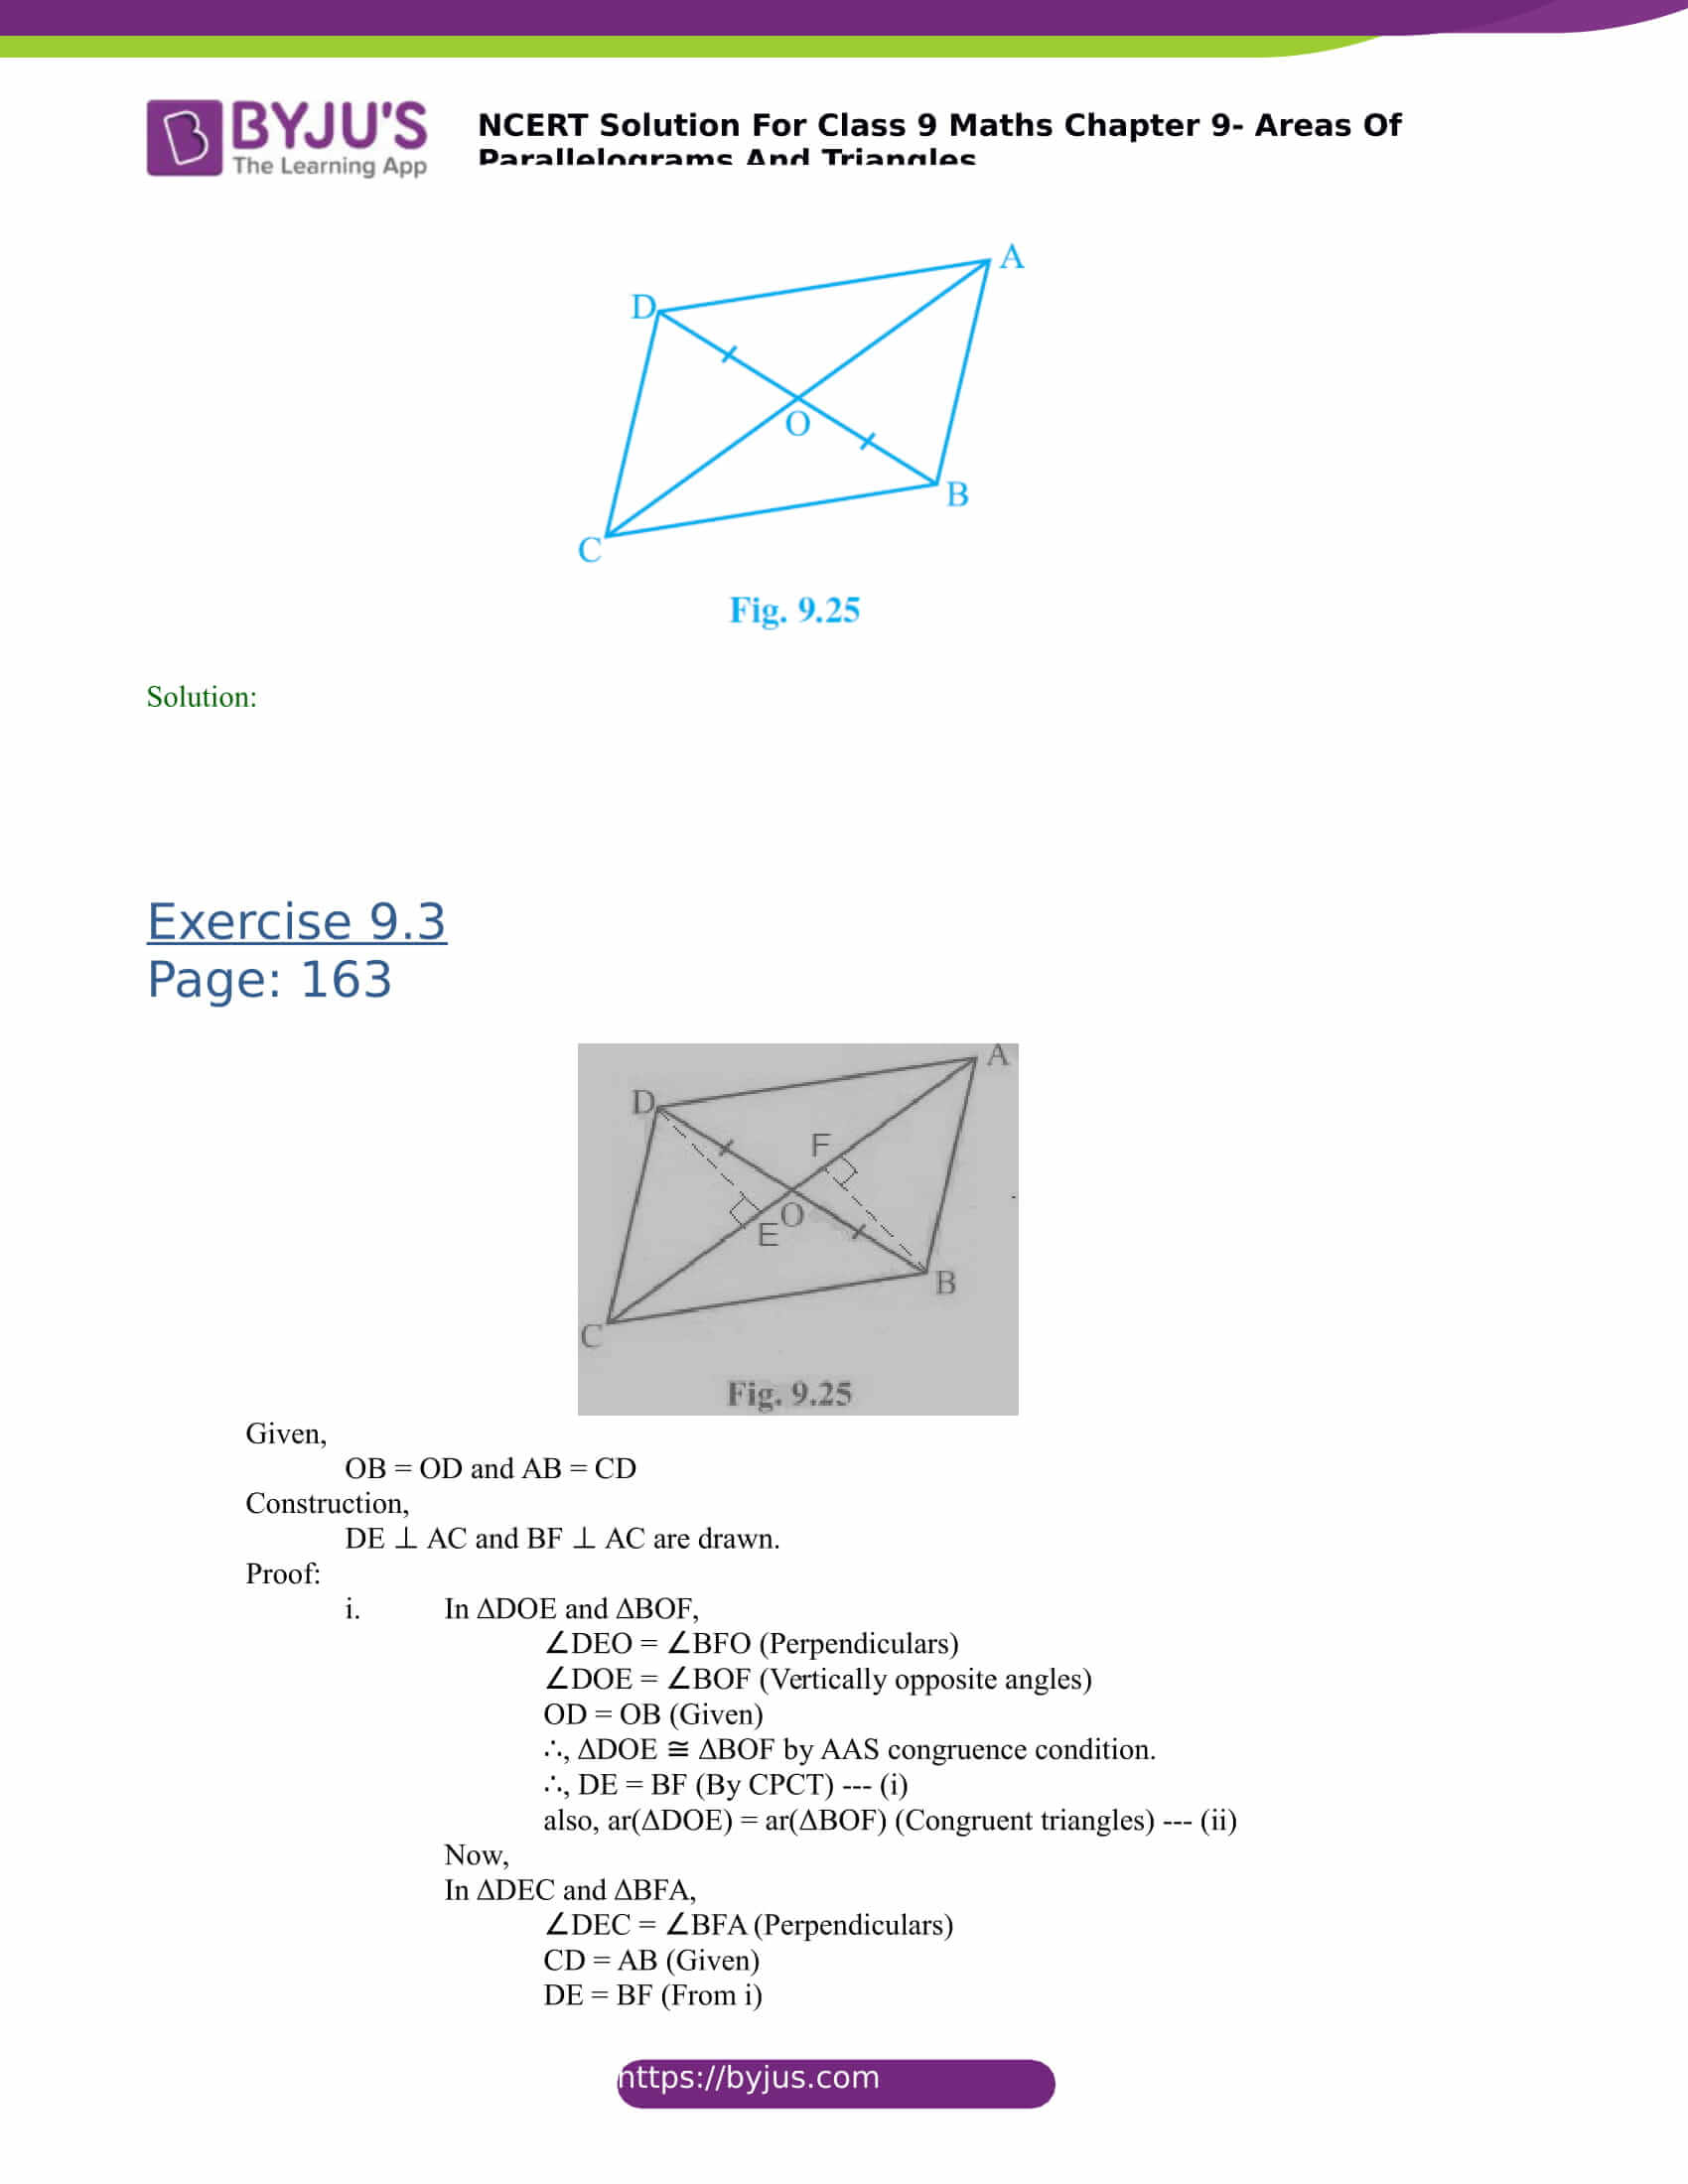 NCERT Solutions for class 9 Maths Chapter 9 Areas of parallelograms and triangles Part 11